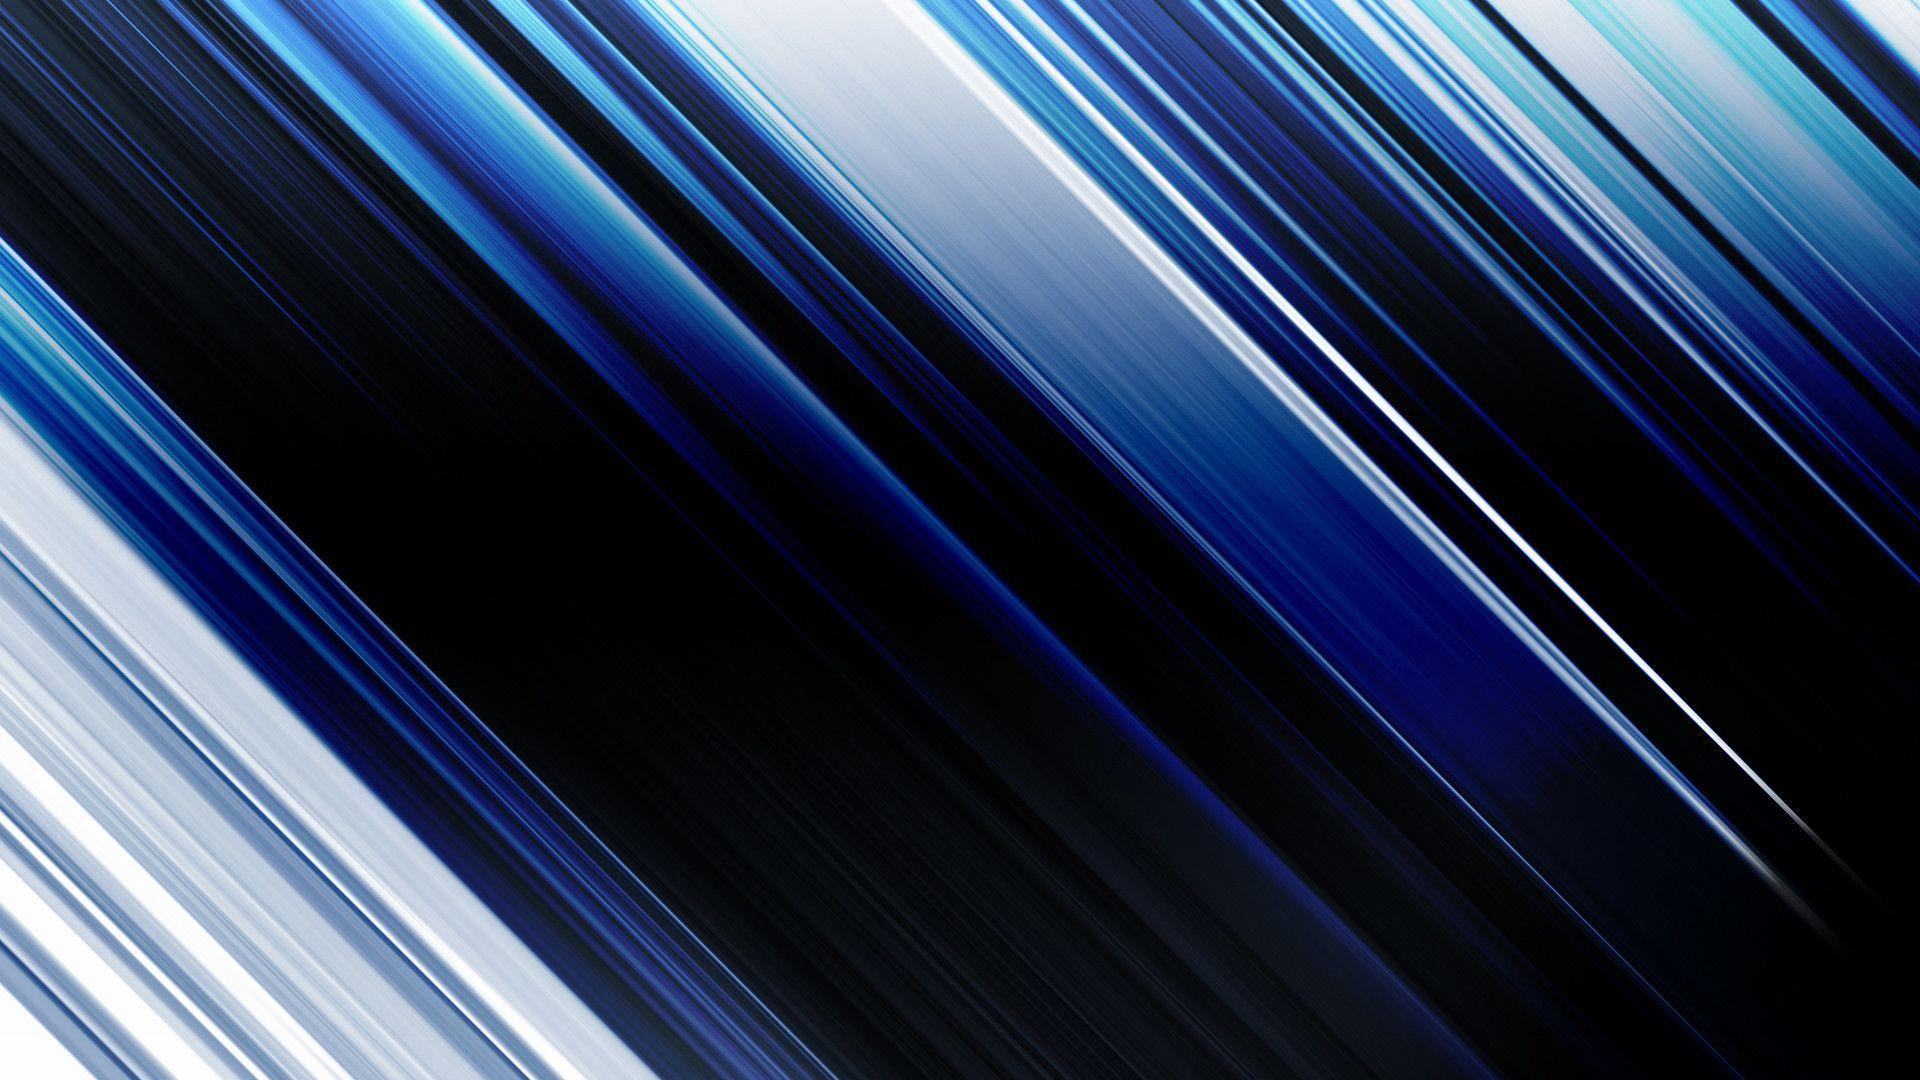 Download Abstract Blue Motion Blur Line Wallpapers 1920x1080